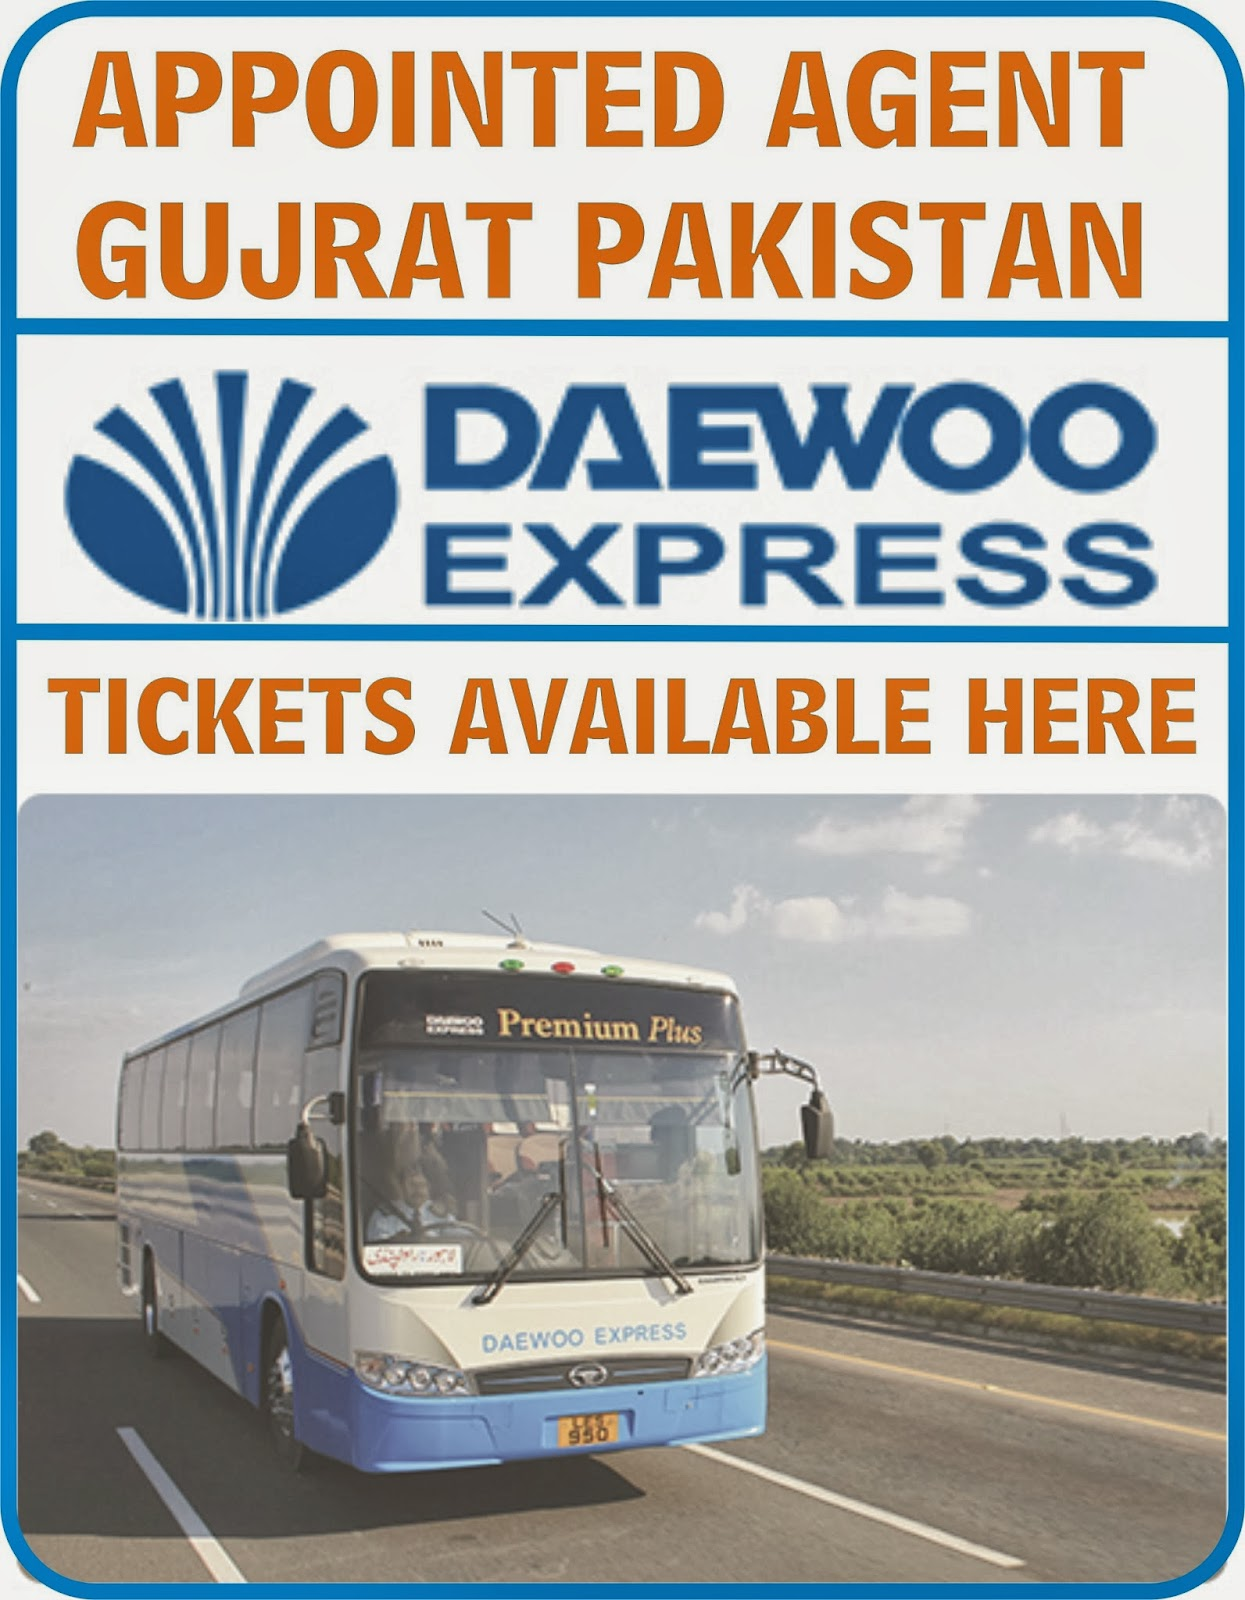 DAEWOO EXPRESS GUJRAT: September 2013